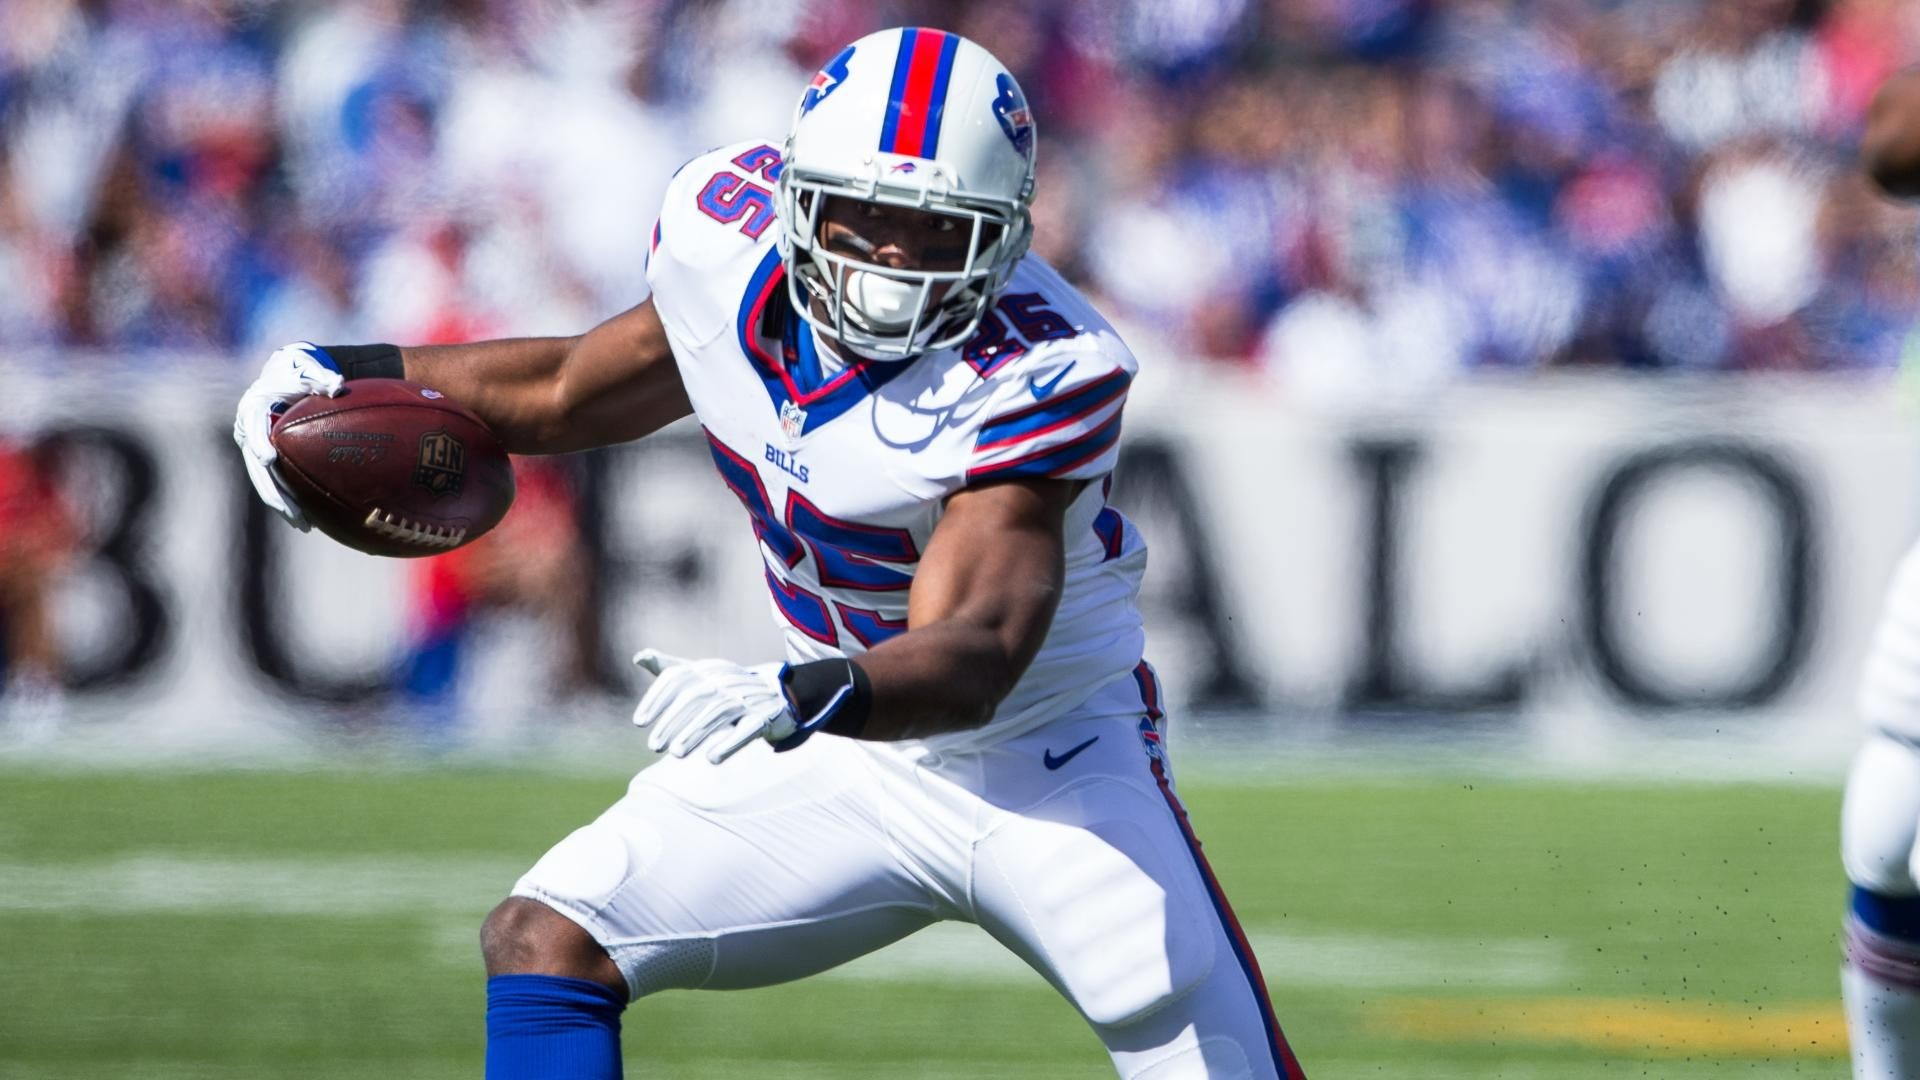 McCoy returns to the Bills following a season of exciting production and  hamstring rehabilitation. A few drunk cops could have killed him in a bar  fight in …